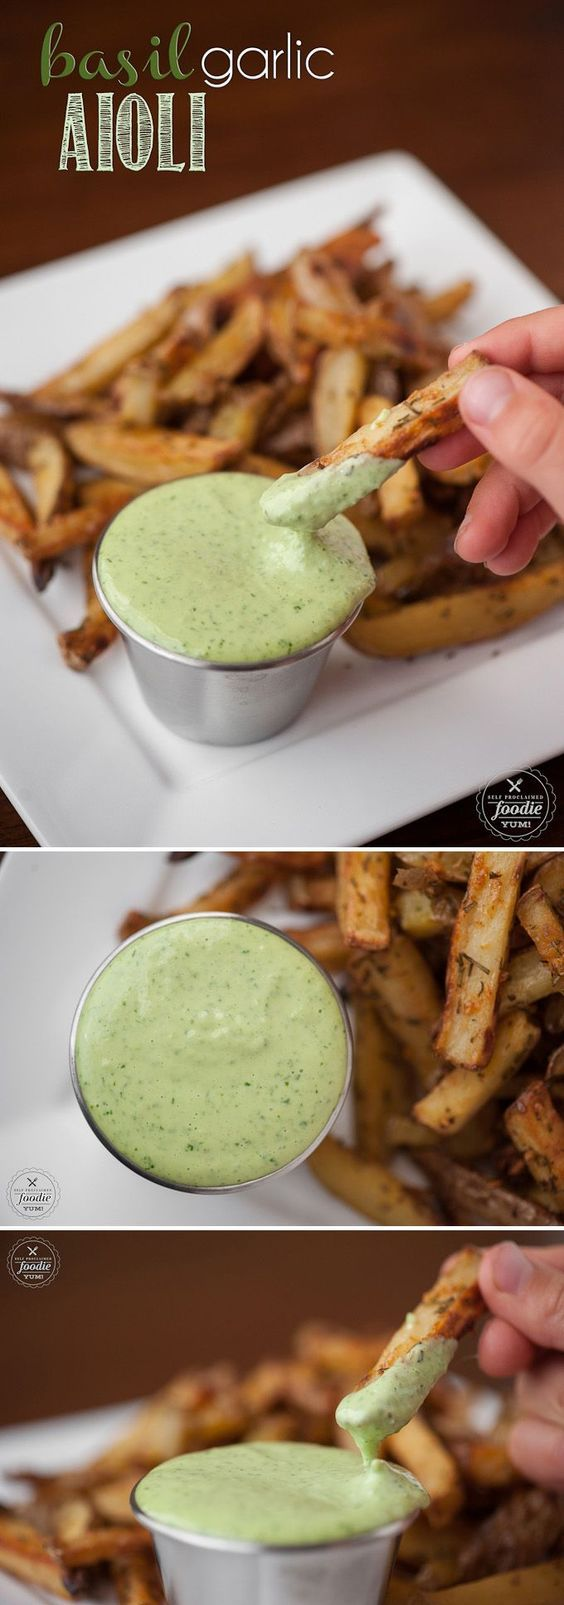 Making homemade Basil Garlic Aioli from scratch only takes a few minutes and the�